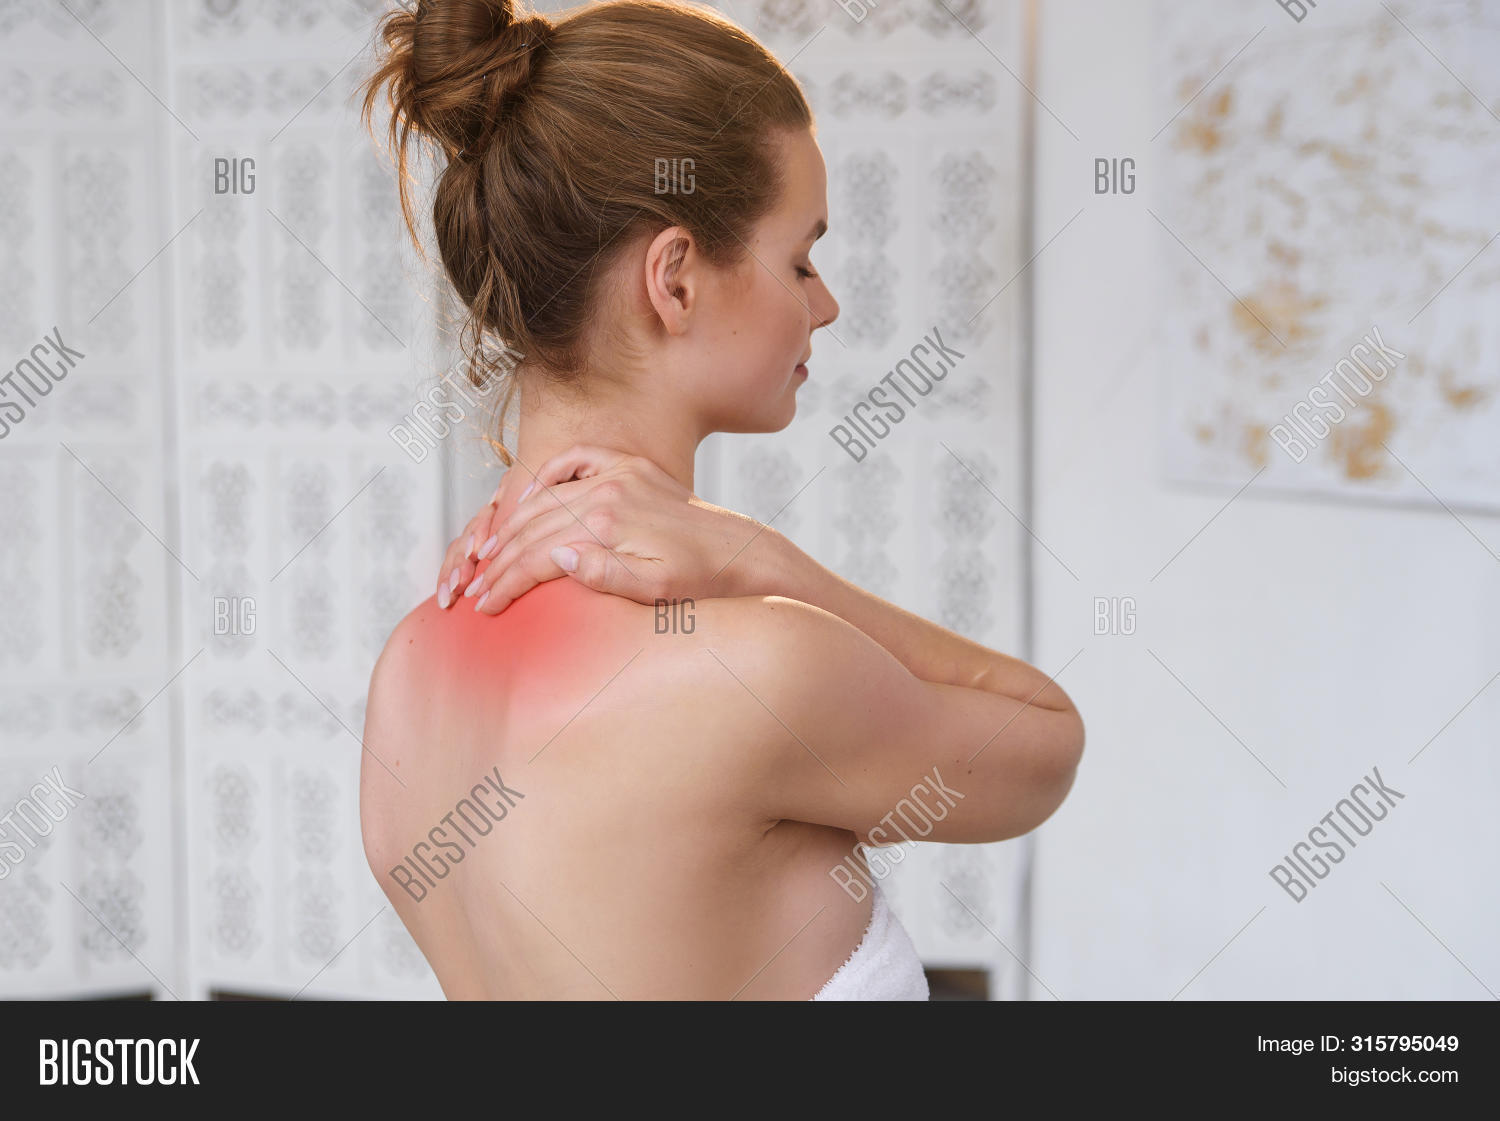 ache,adult,back,backache,backbone,body,caucasian,cramp,feeling,female,forehead,girl,hair,hand,head,health,healthcare,human,hurt,illness,injury,isolated,lumbago,massage,massaging,medical,medicine,muscle,muscular,neck,nerve,osteoporosis,pain,painful,person,problem,resolution,shoulder,sick,spine,stress,stressed,stretch,suffering,symptom,therapy,tired,white,woman,young